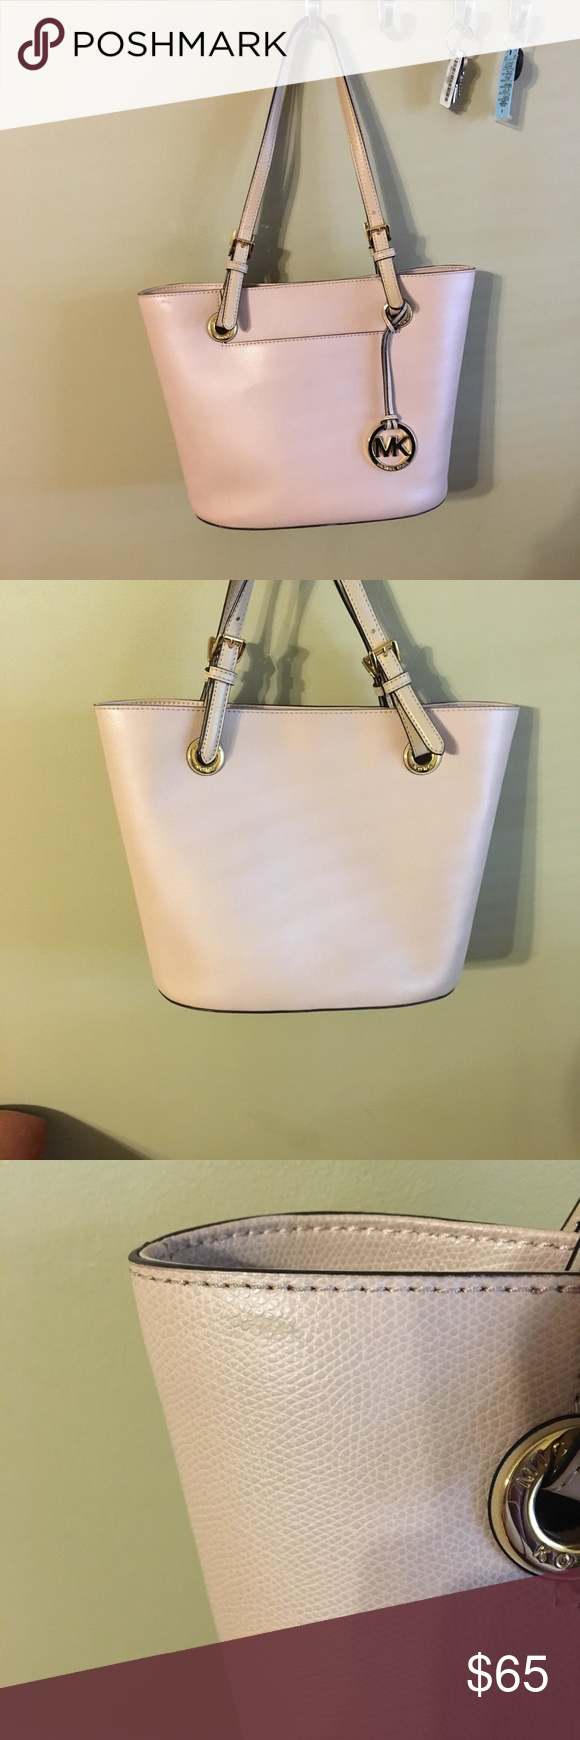 3a869167726e68 Michael Kors purse Cute light pink Michael Kors purse with gold detailing  💕 LIGHTLY used but it does have a scuff and a smudge on it that's barely  ...